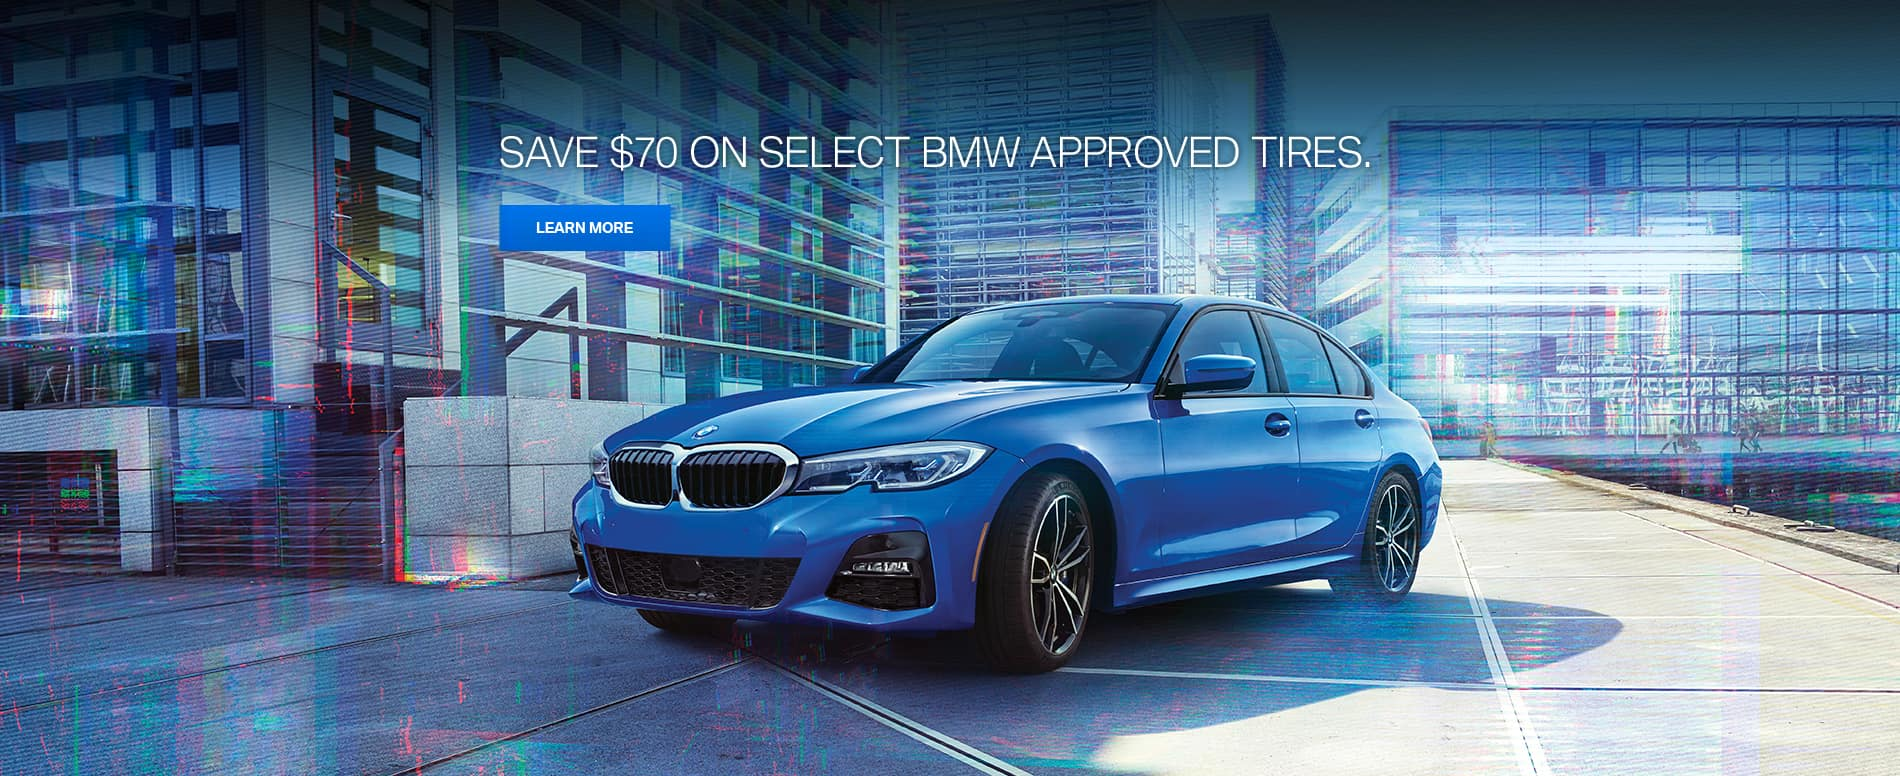 BMW Spring Tire Special